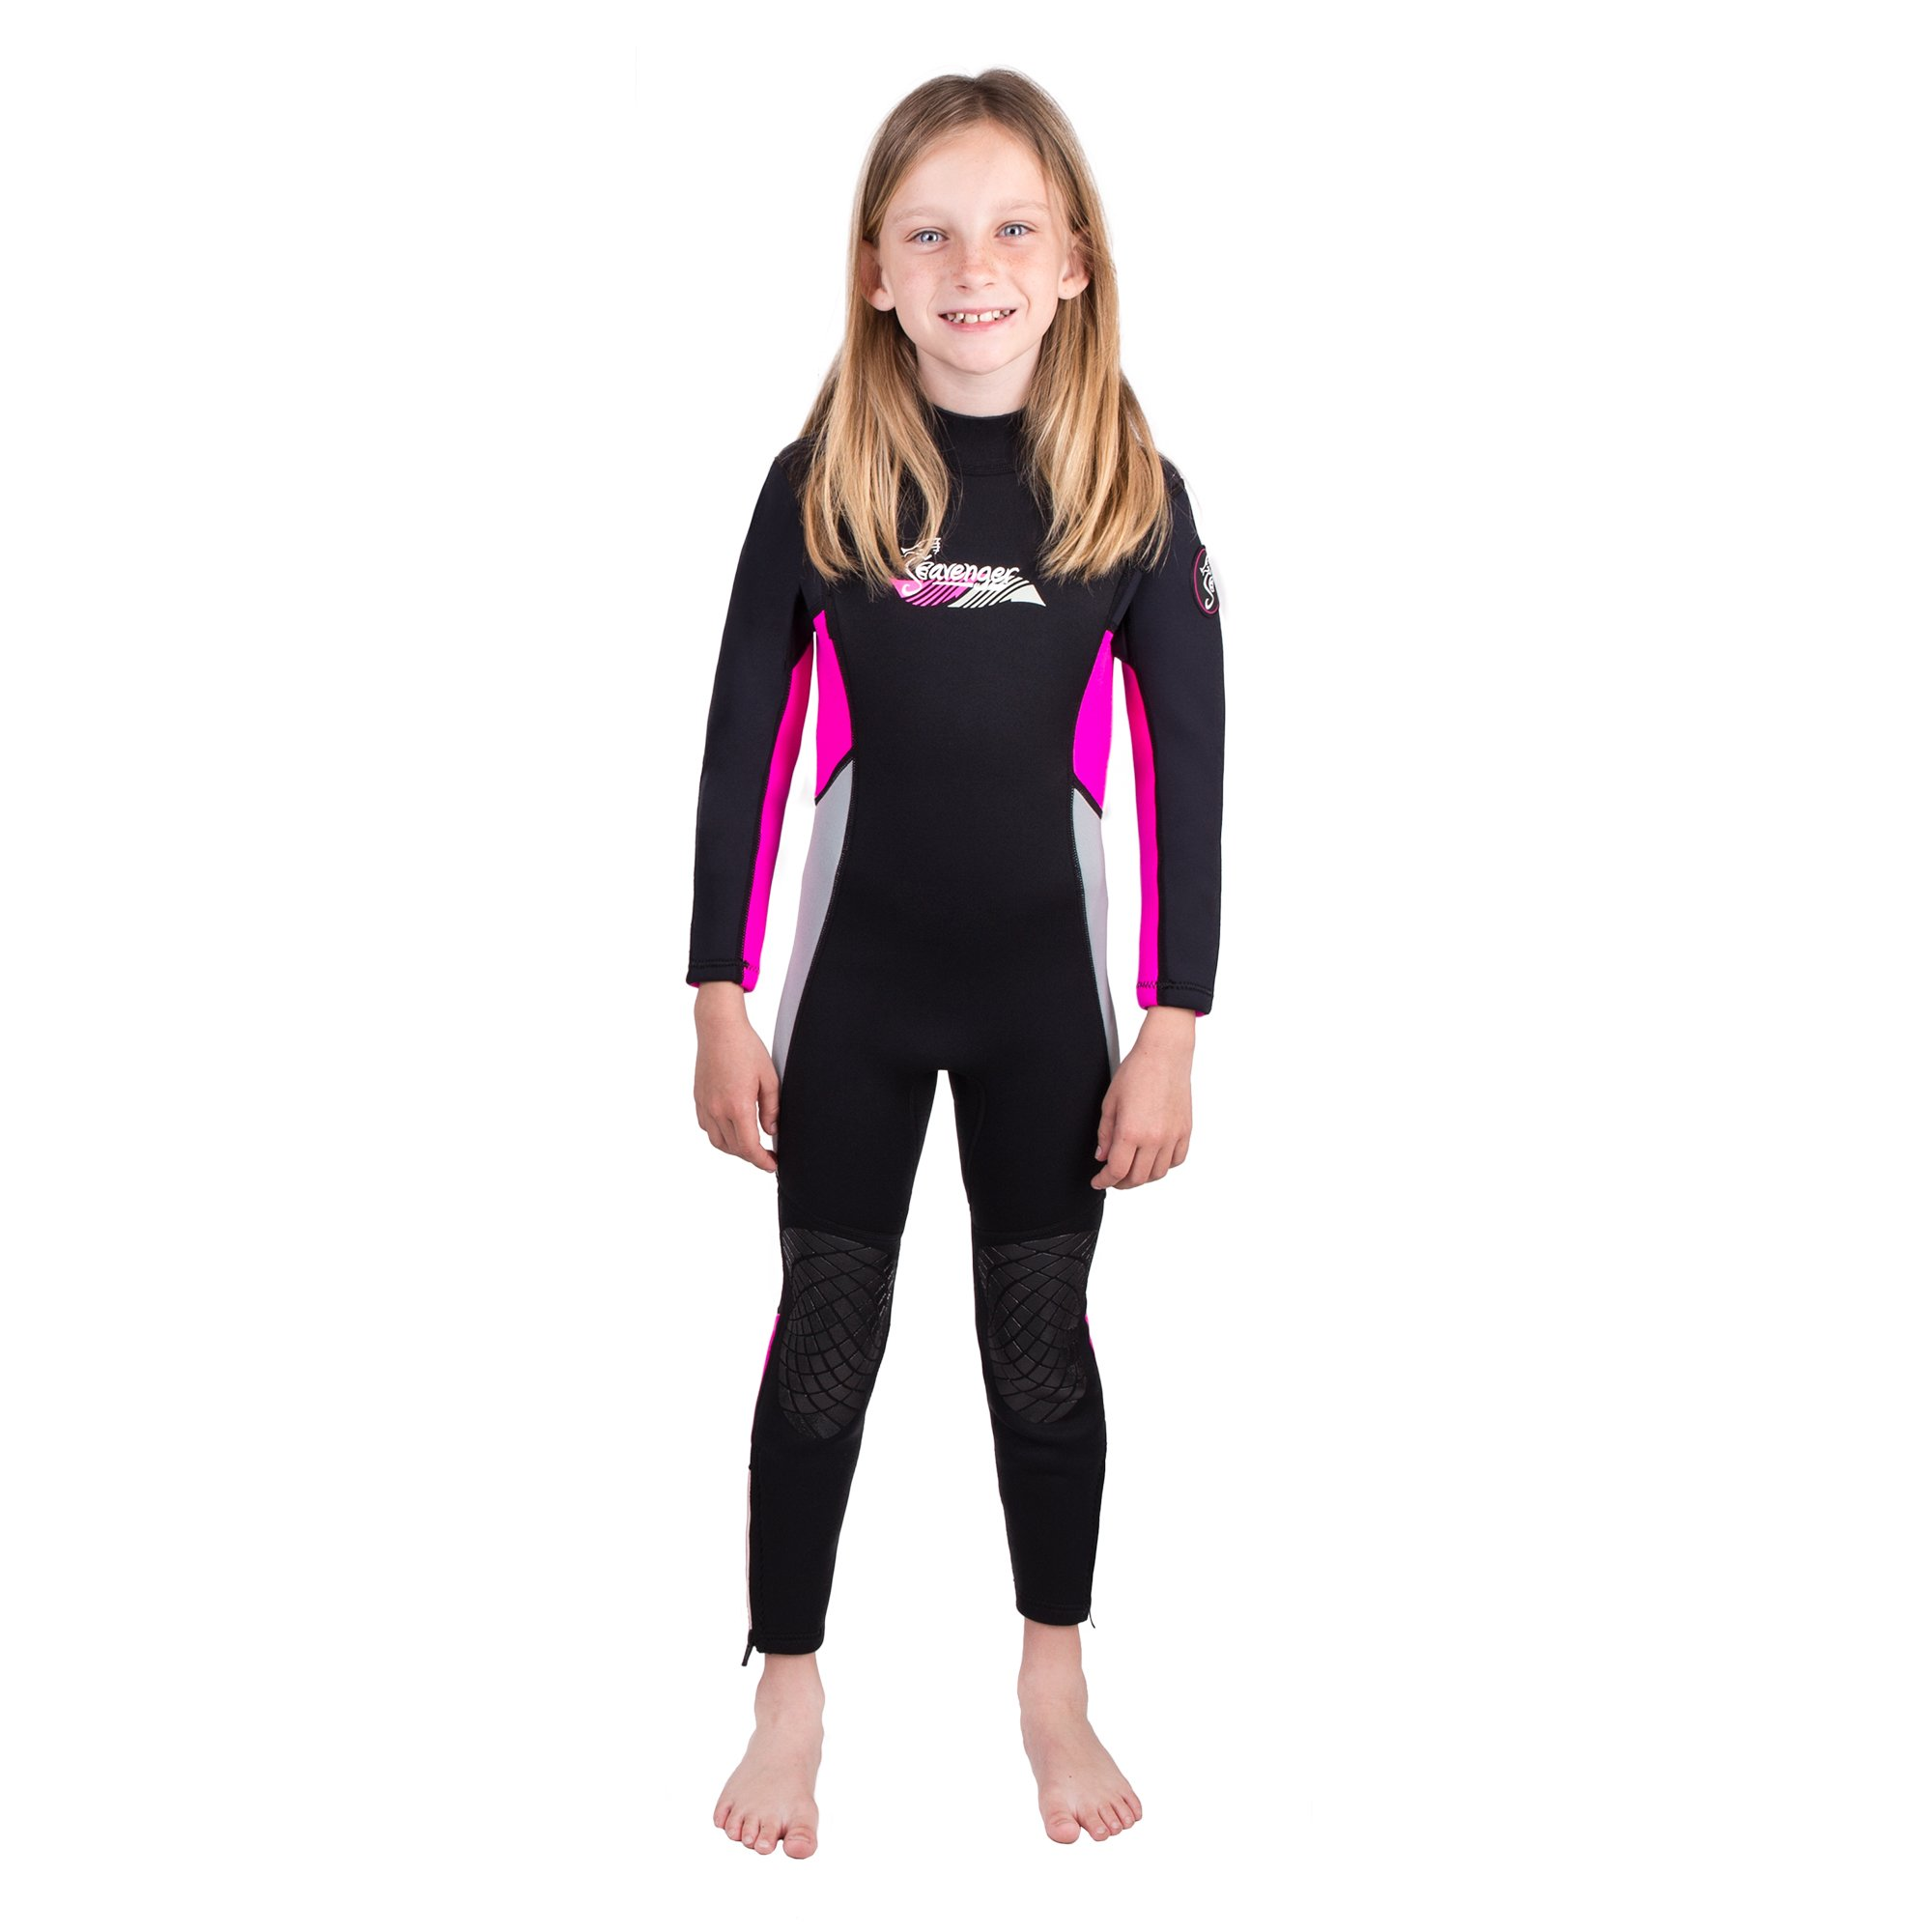 Seavenger Scout 3mm Kids Wetsuit | Full Body Neoprene Suit for Snorkeling, Swimming, Diving (Coral Pink, 14) by Seavenger